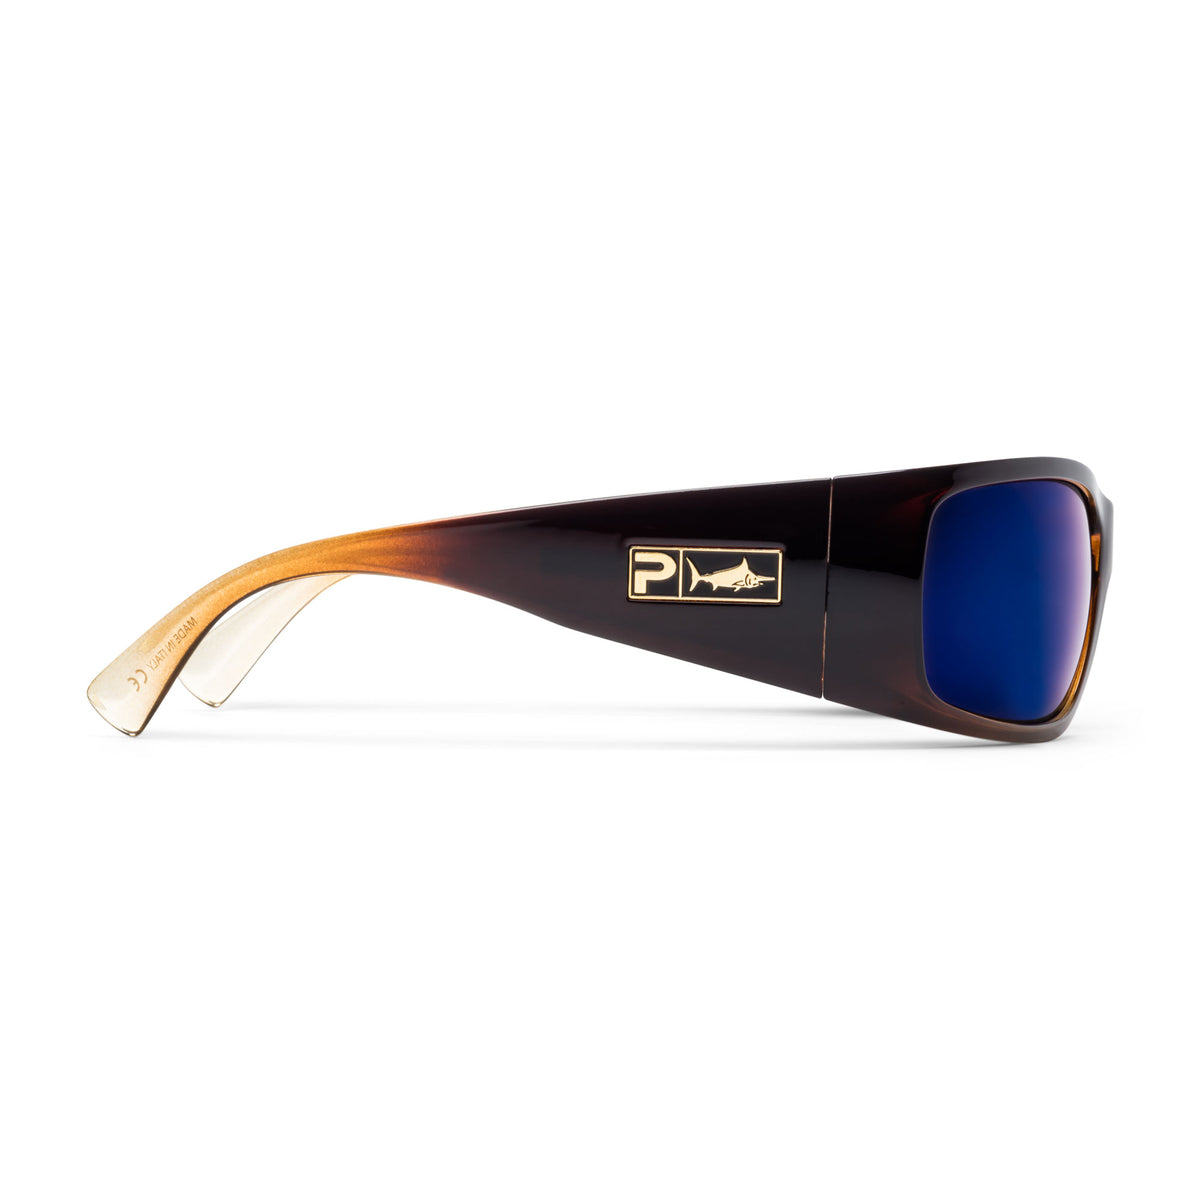 Twin Diesel - Polarized XP-700™ Polycarbonate Lens Big Image - 3